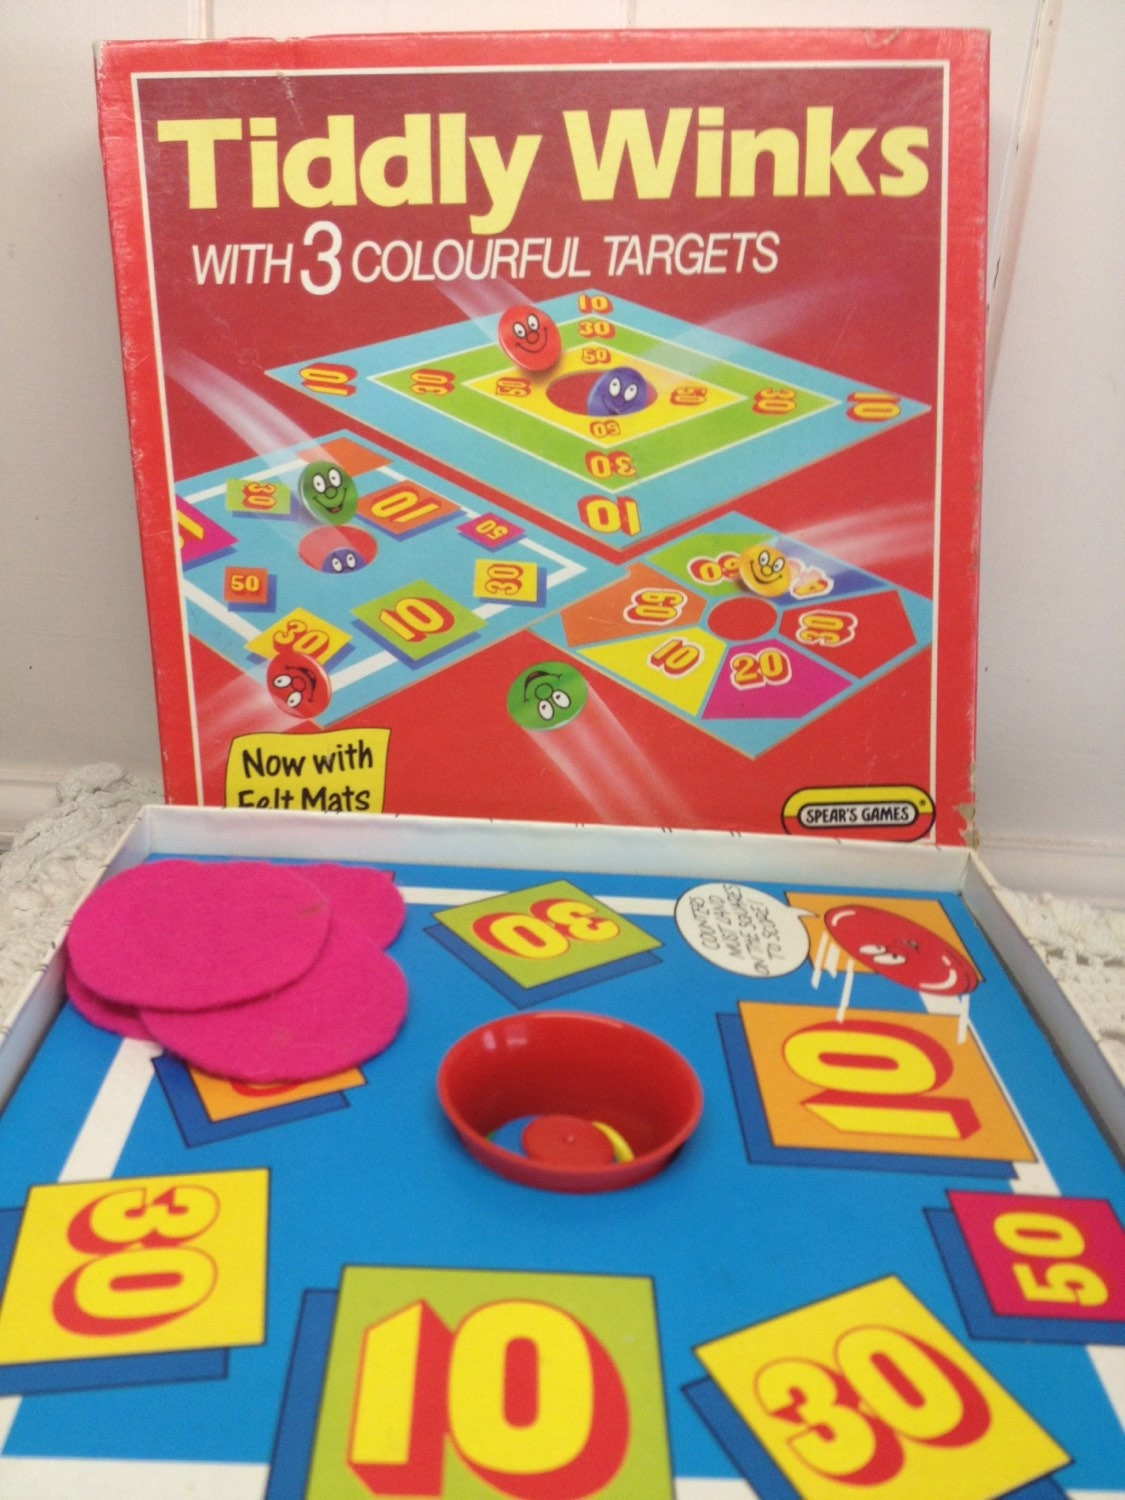 Vintage Toys And Games : Tiddly winks s game retro toy vintage